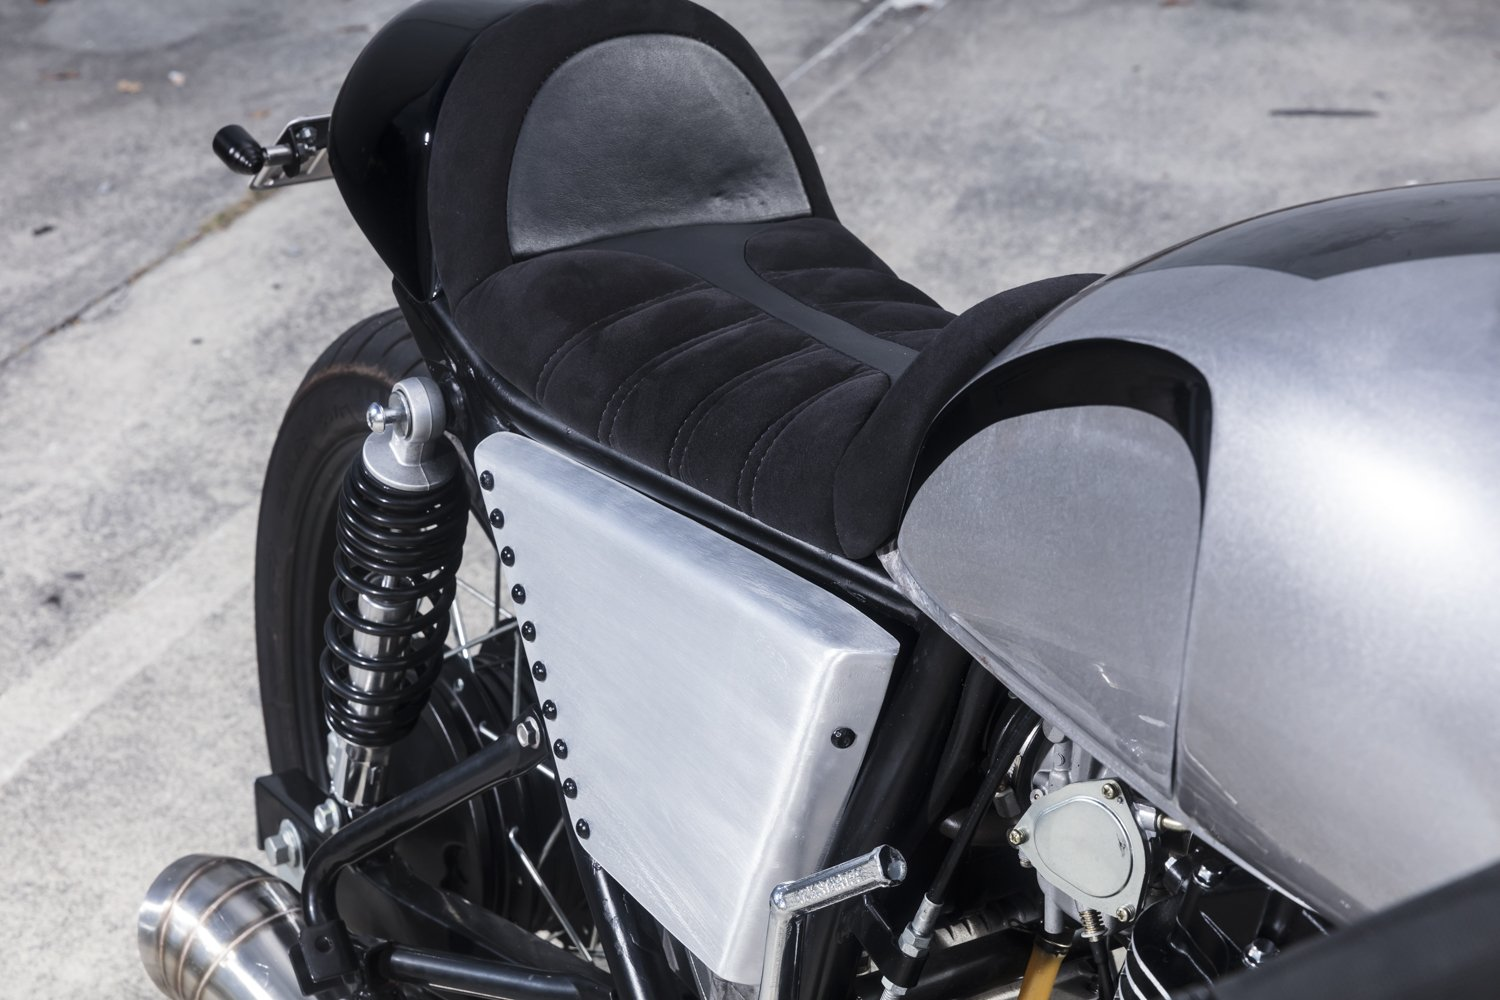 Custom motorcycle seats Queensland brisbane goldcoast cafe racer scrambler chopper